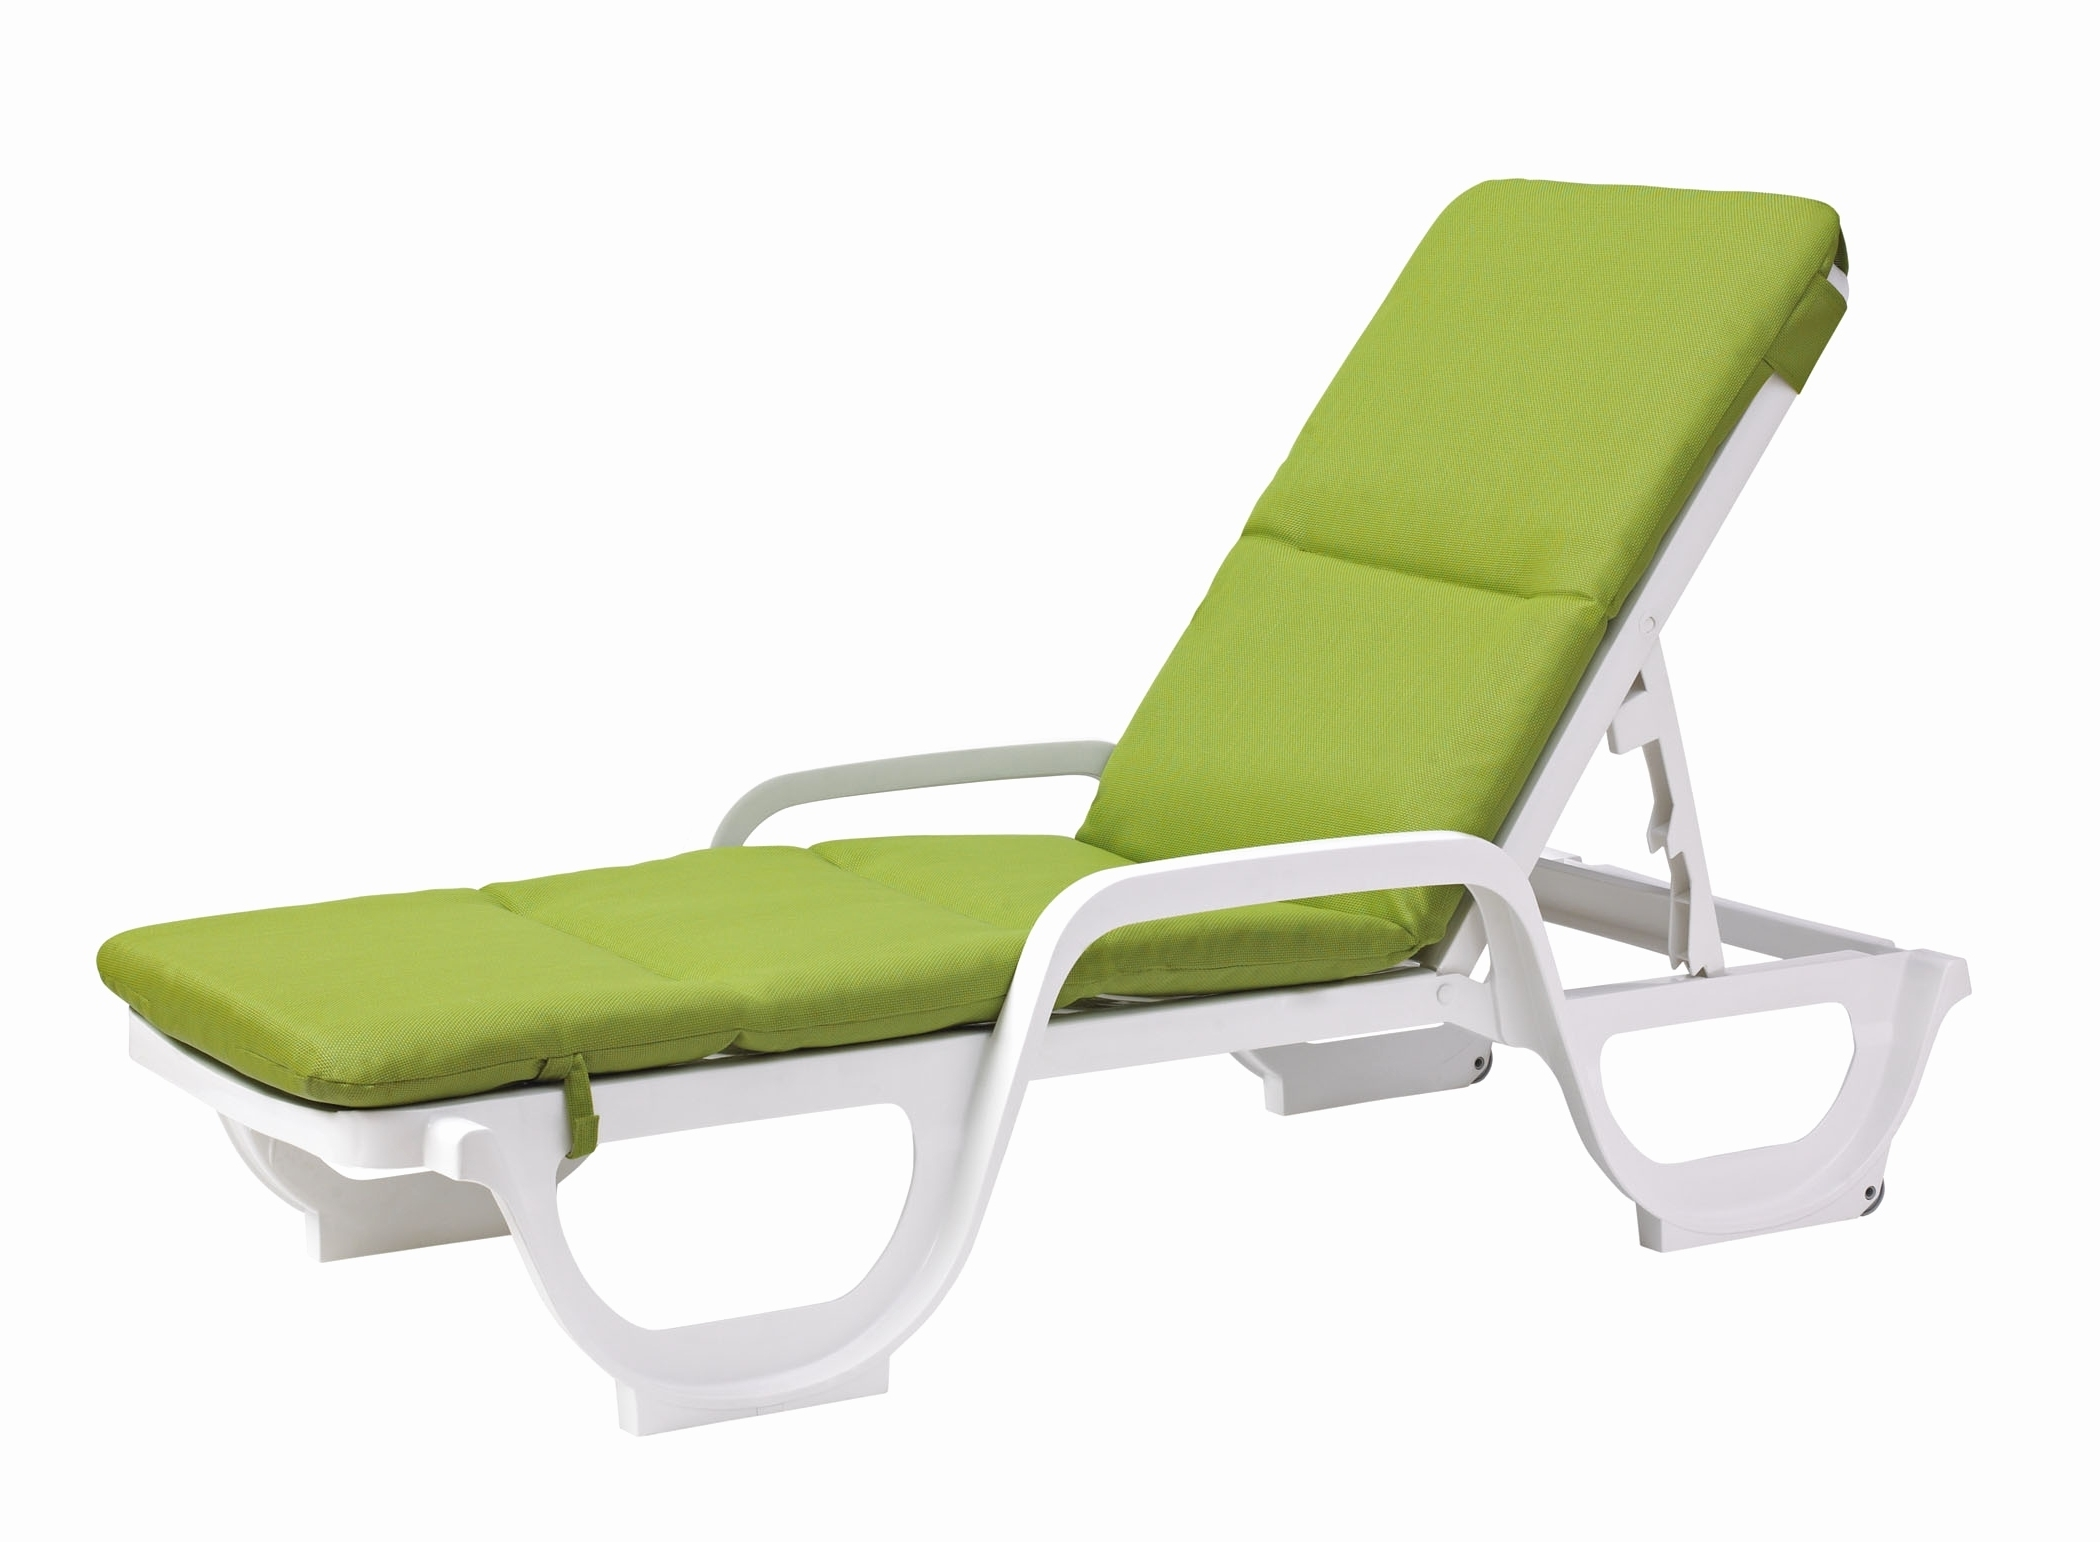 Atlanta Chaise Lounge Chairs With Most Up To Date 31 Awesome Cheap Lounge Chair Pictures (31 Photos) (View 5 of 15)